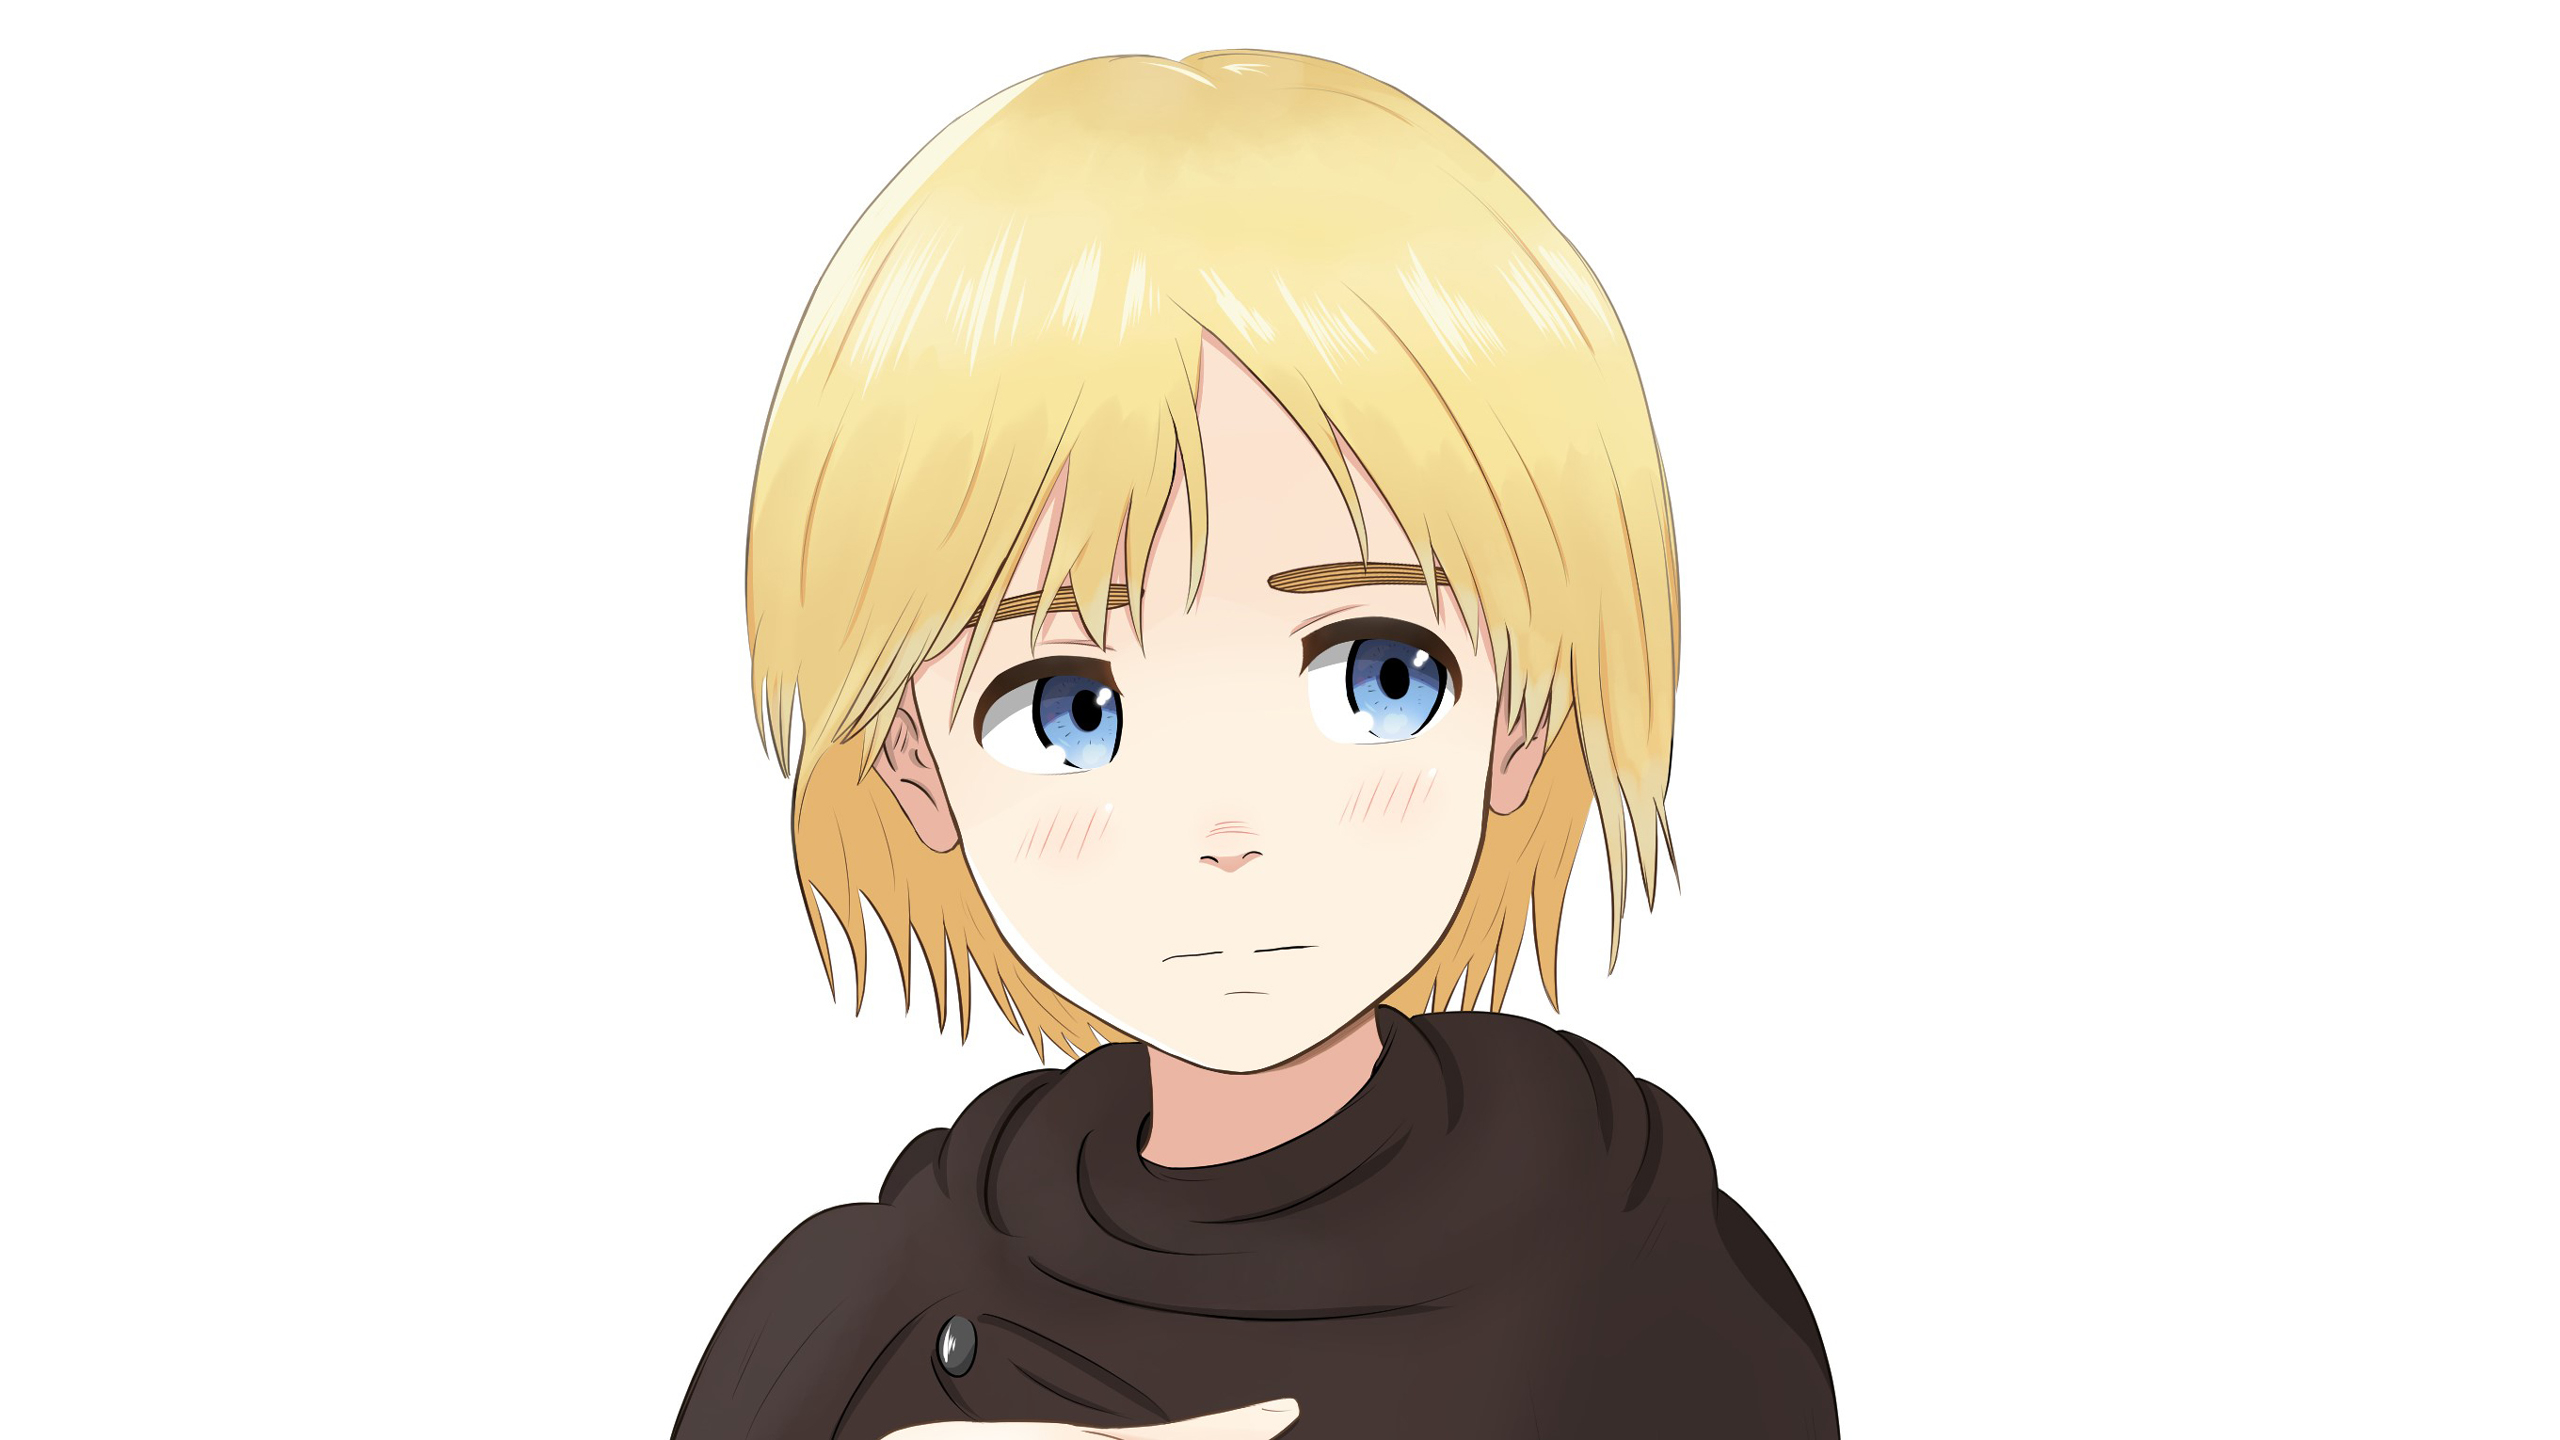 on titan armin arlert with yellow hair with white background hd anime wallpapers